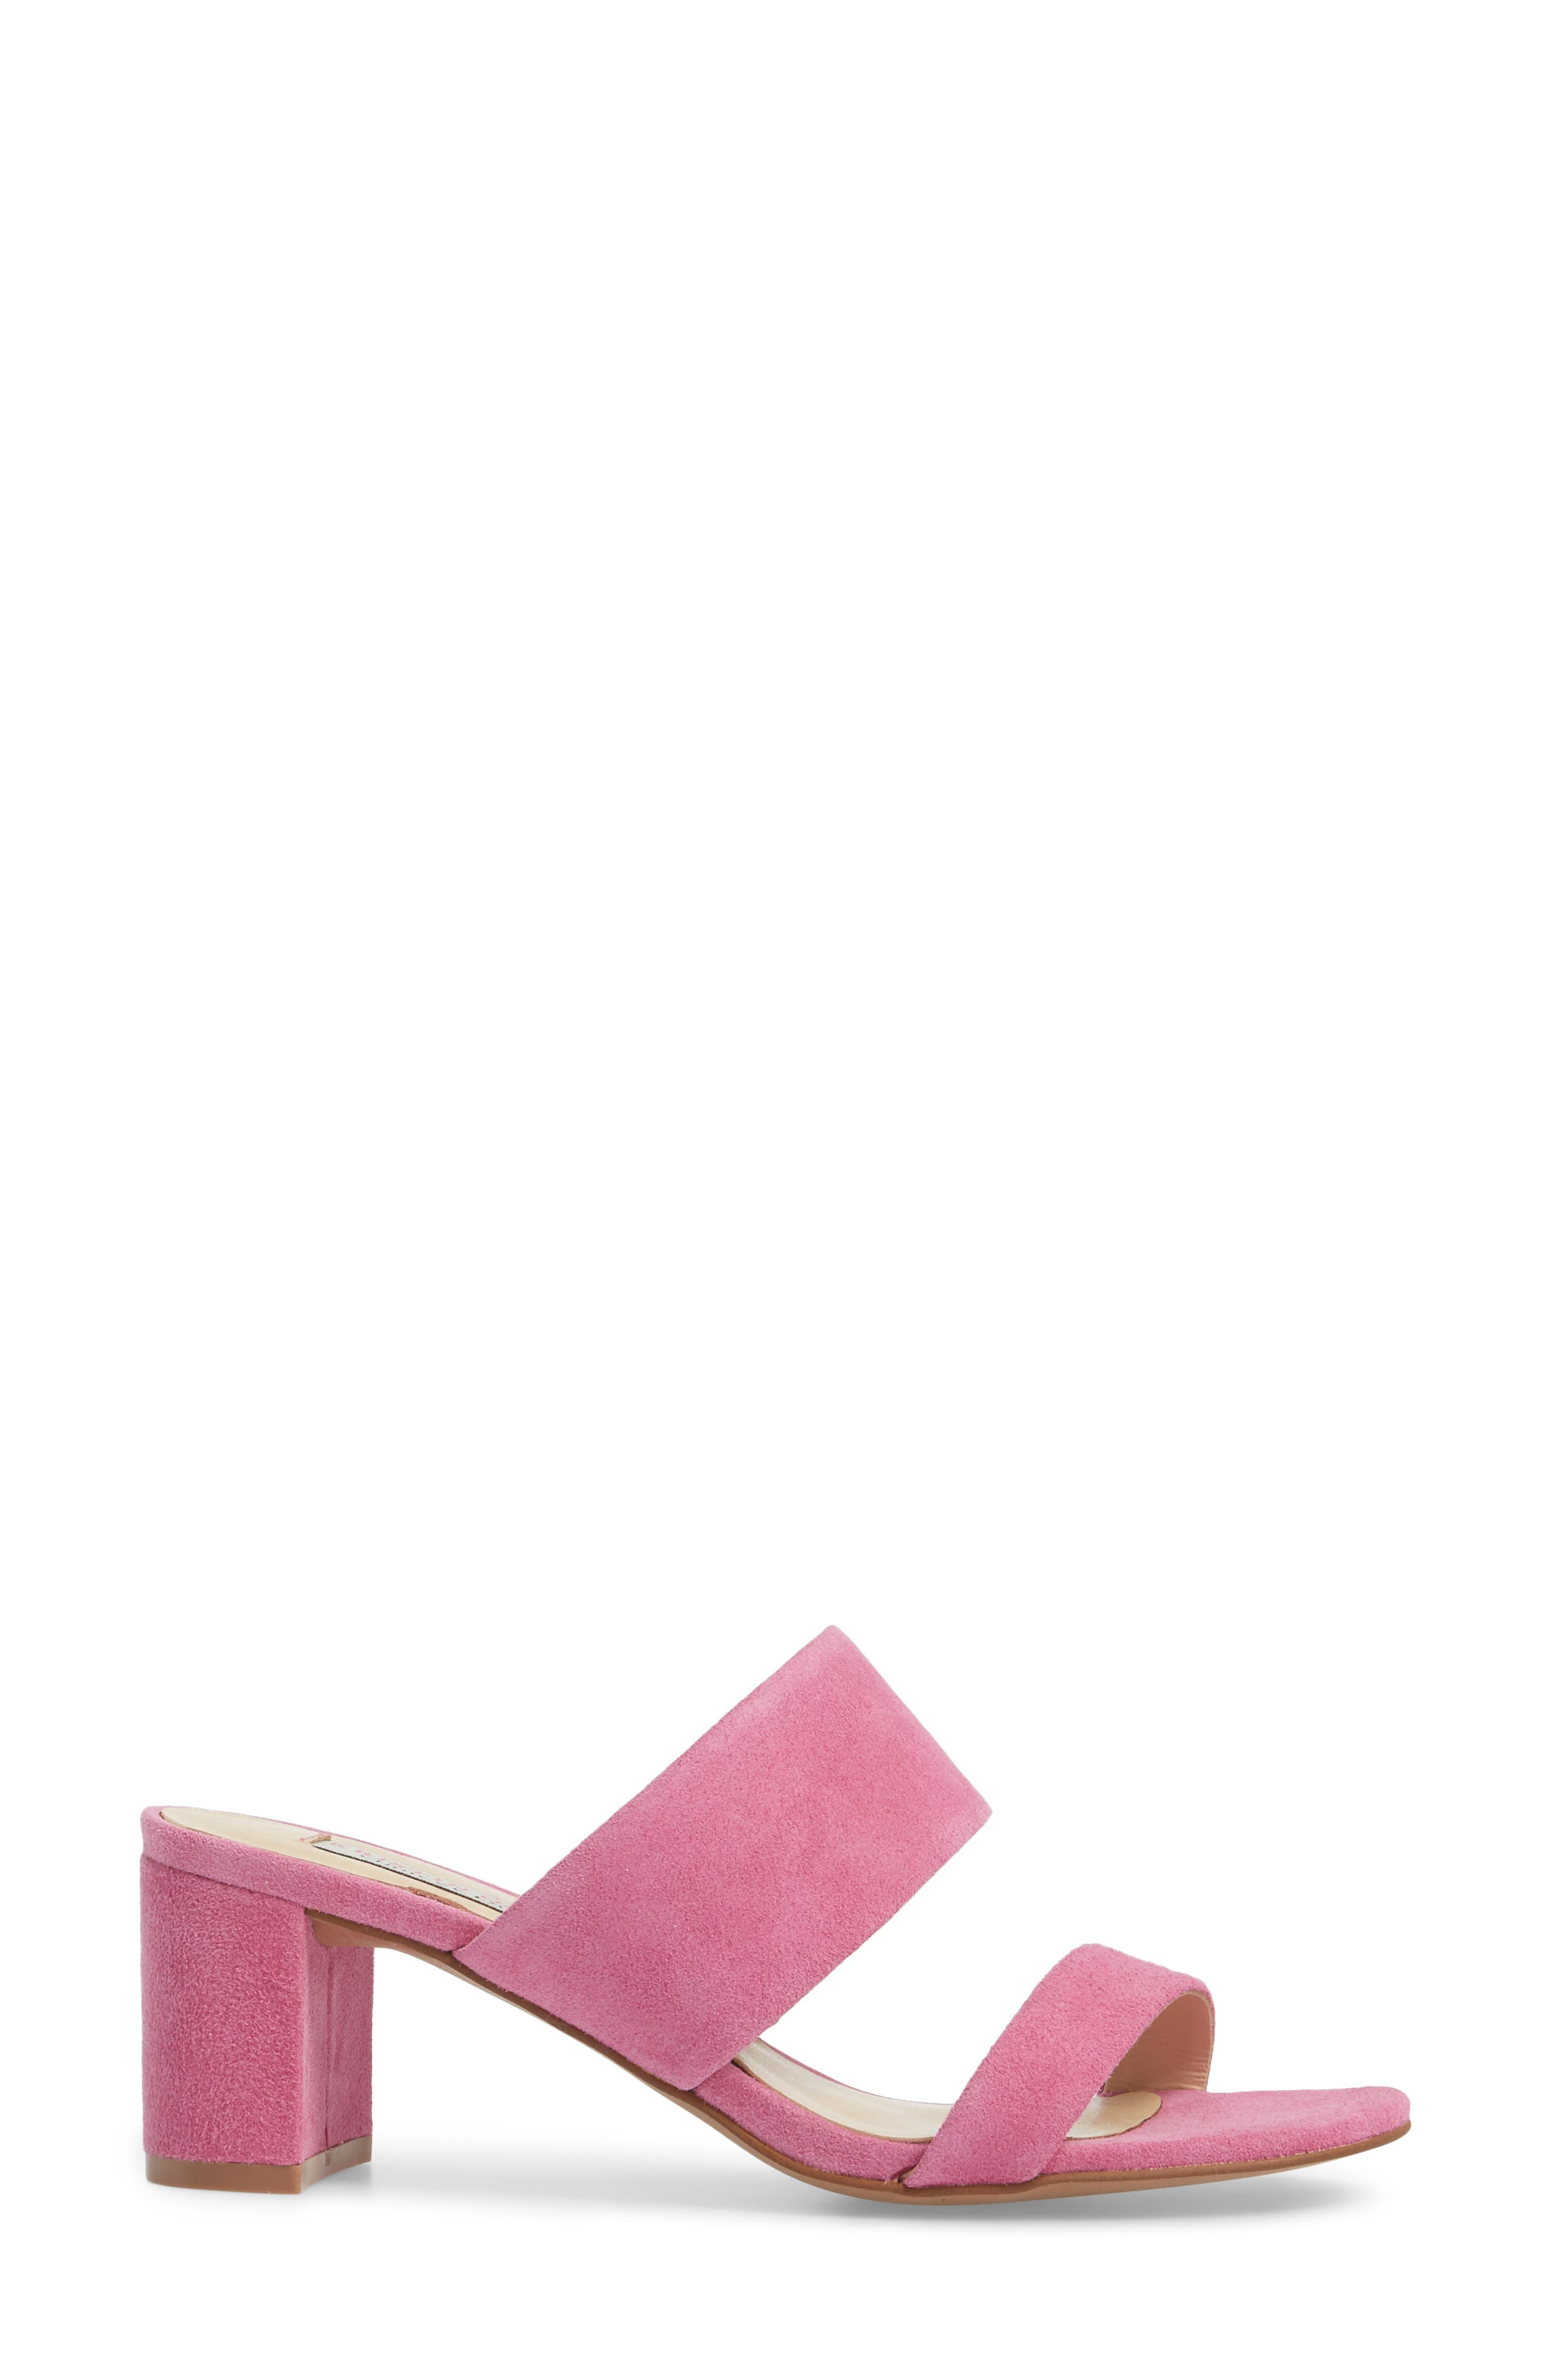 Lakeview Sandal,                             Alternate thumbnail 3, color,                             Fuchsia Suede